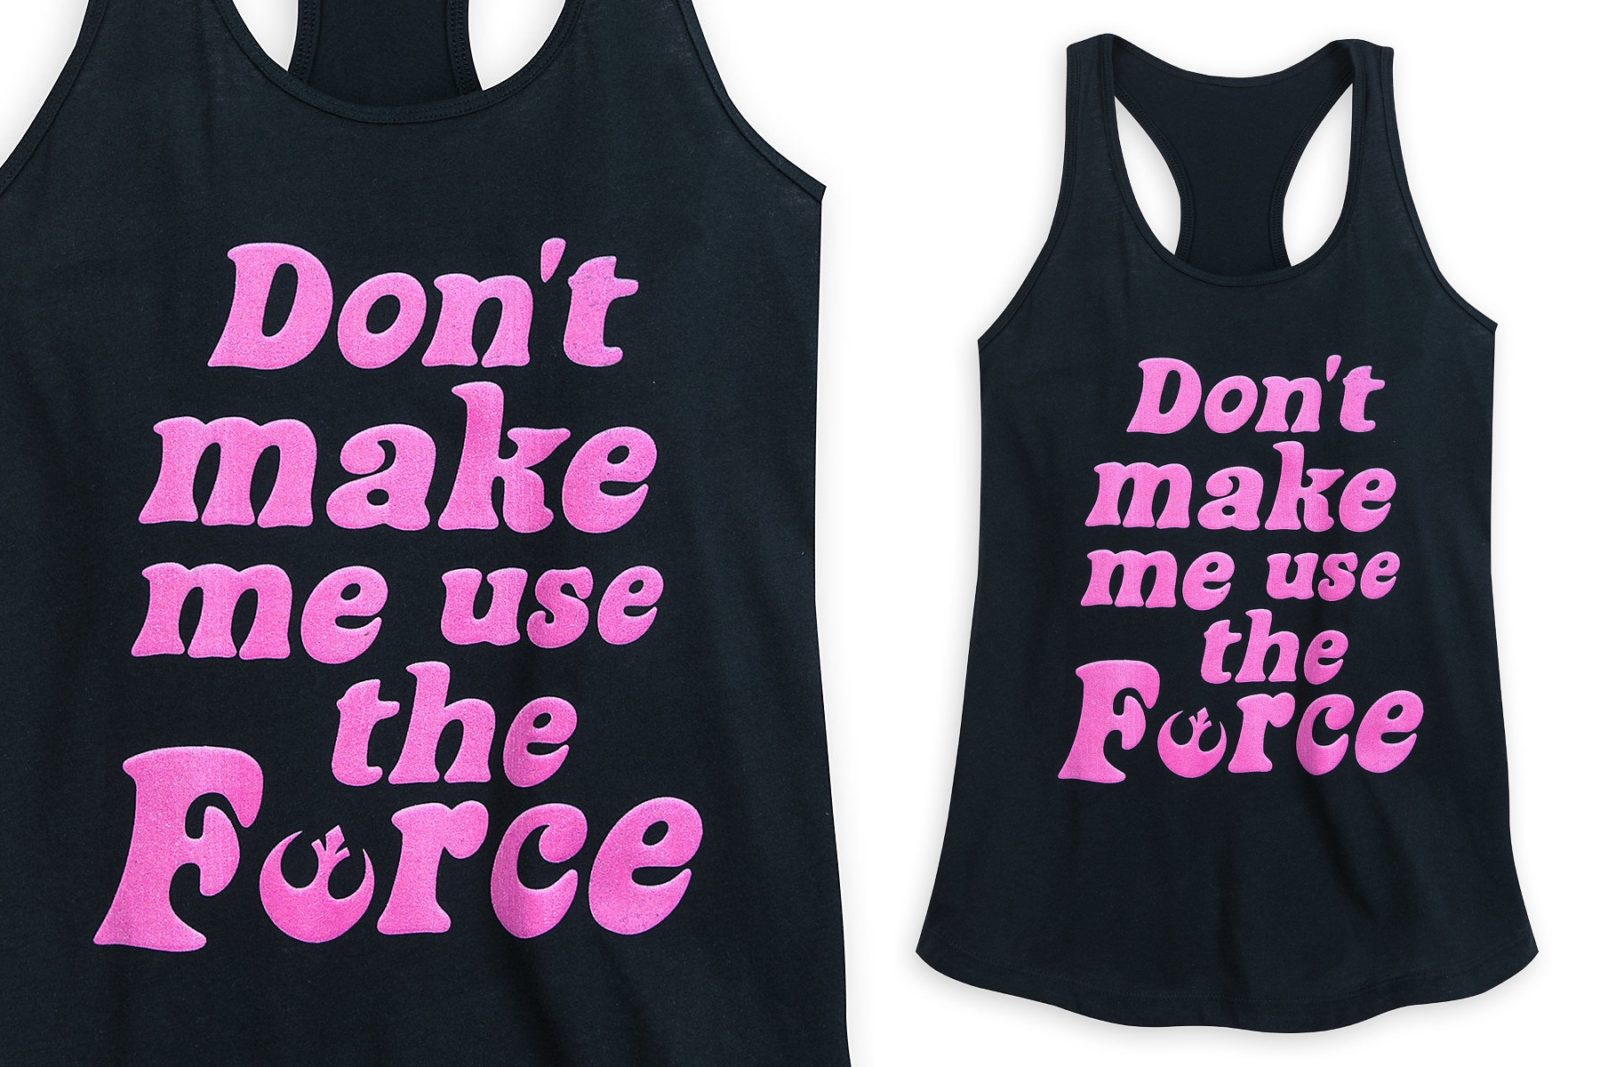 Women's 'Don't Make Me Use The Force' Tank Top